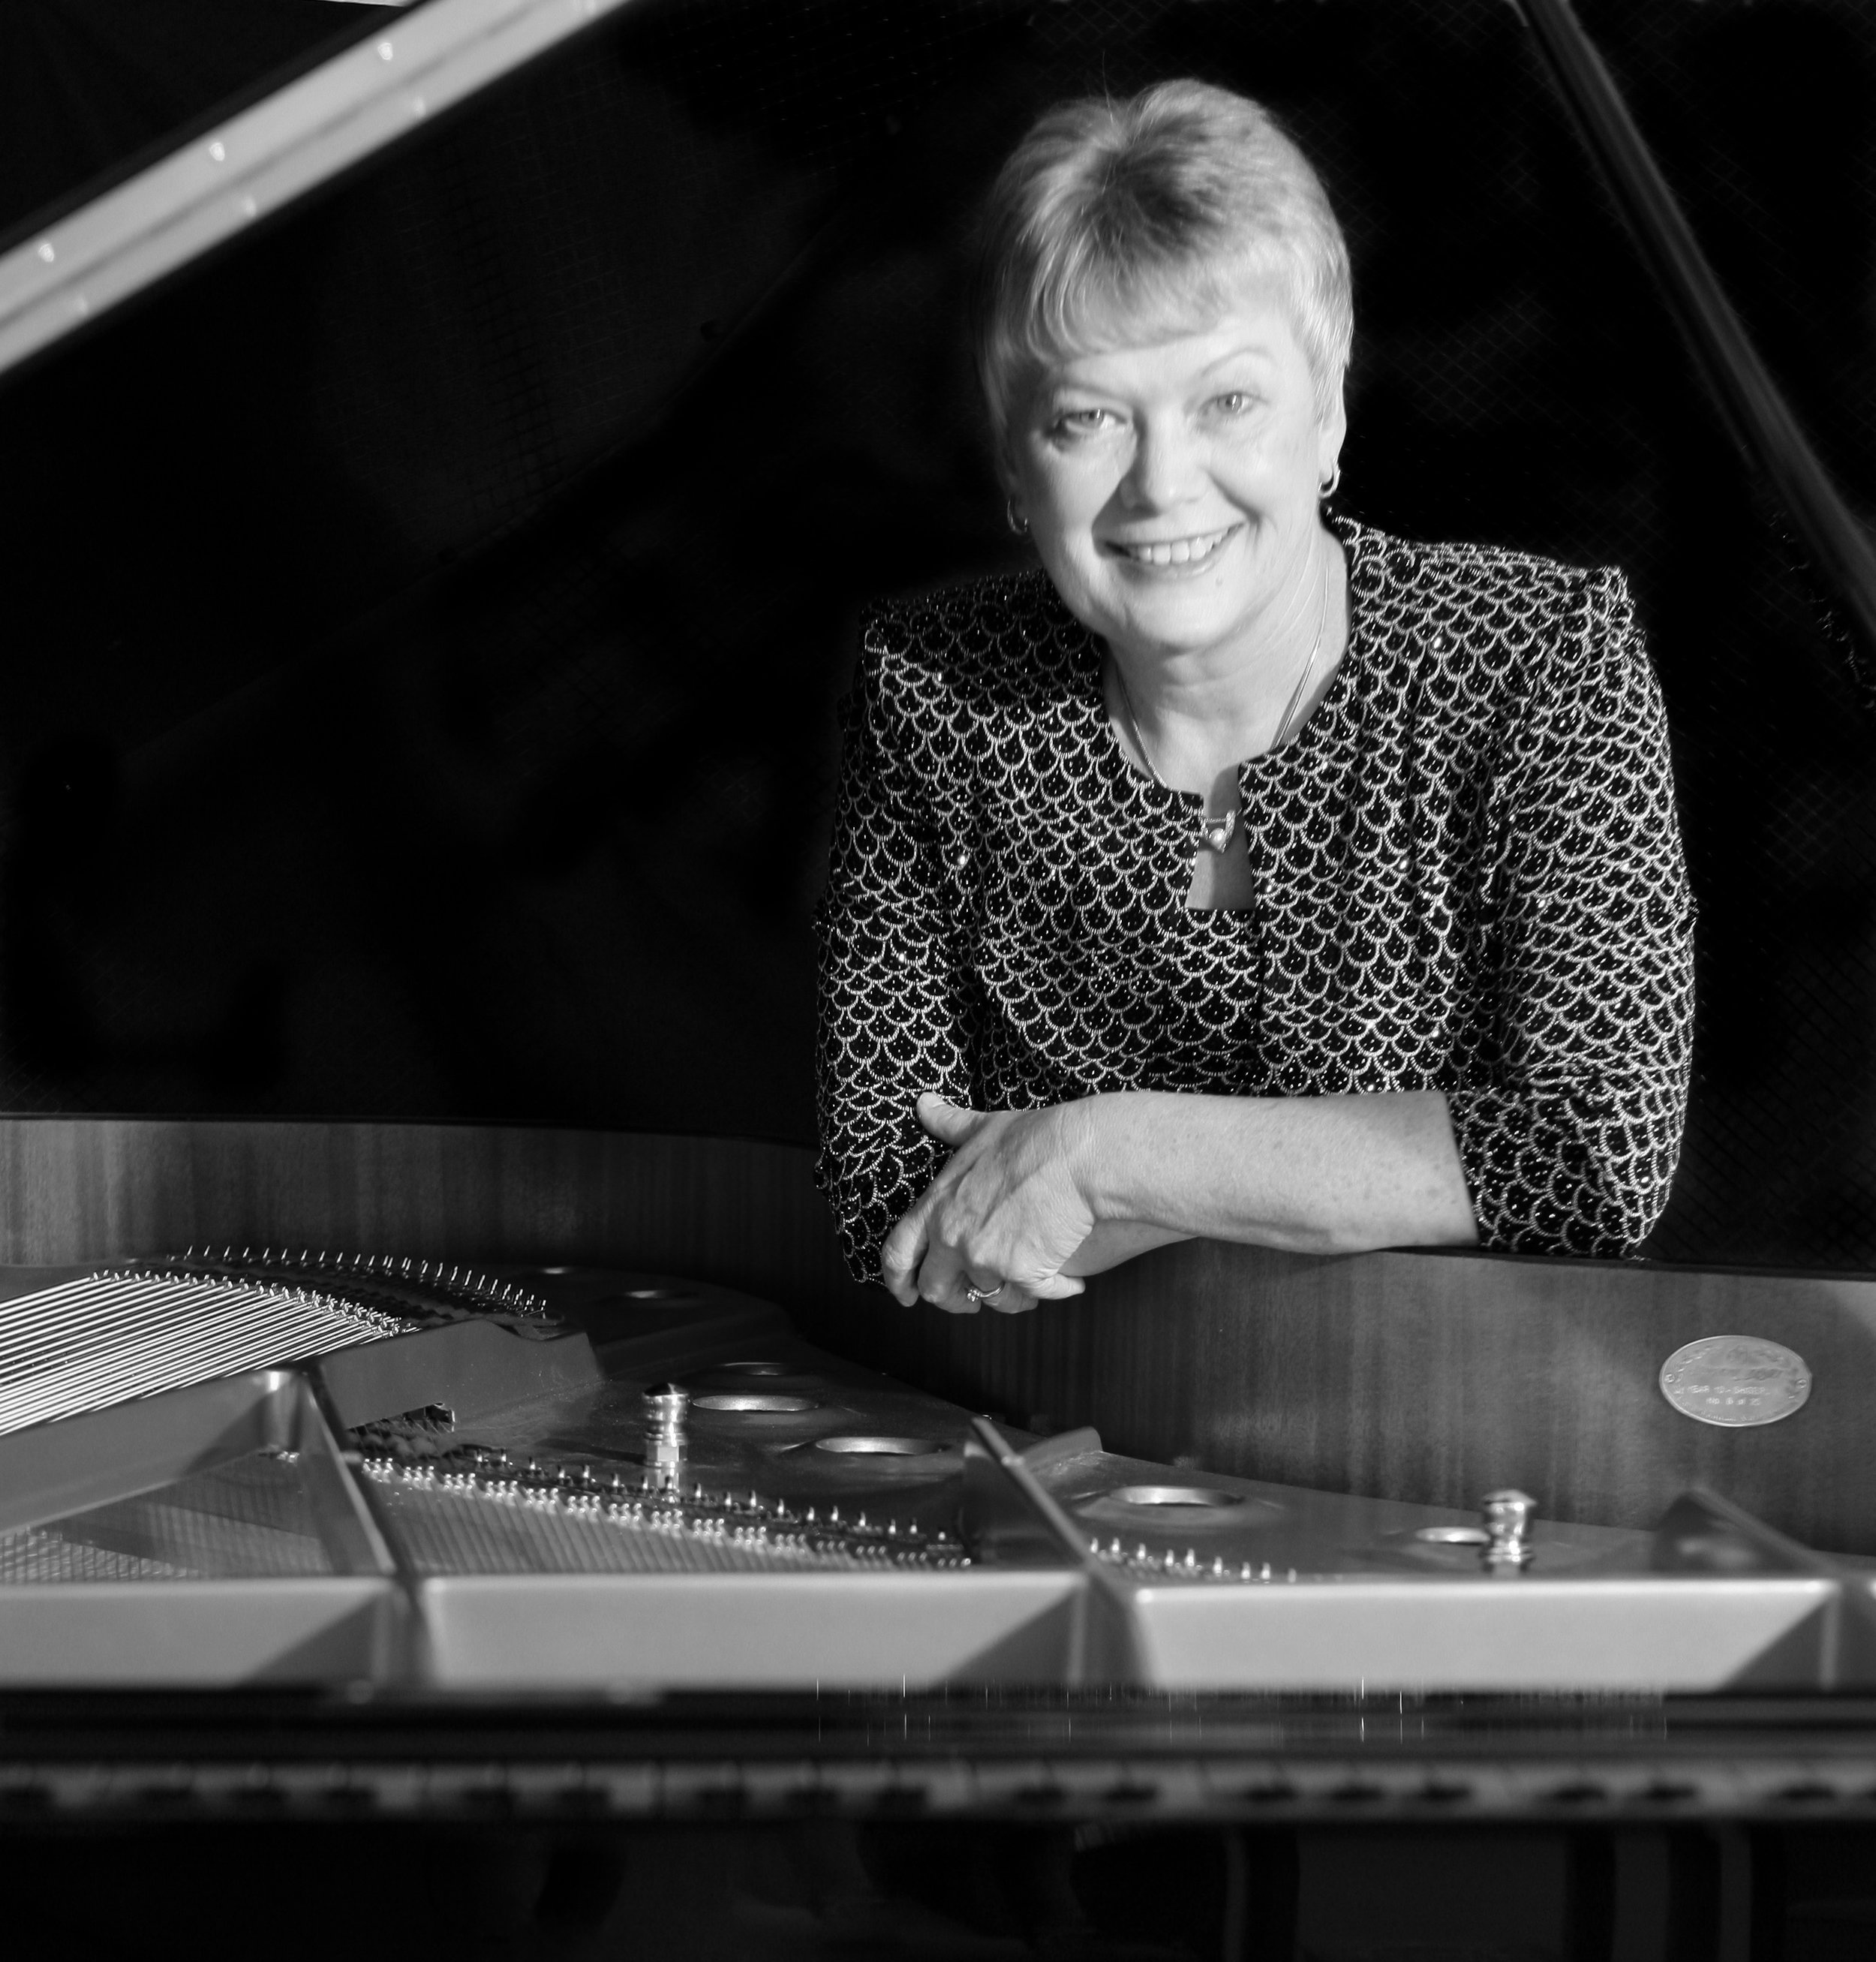 About Kathy - Kathy Edsill-Charles, NCTM (Nationally Certified Teacher of Music), is a pianist-teacher. In addition to her teaching, she is a frequent chamber musician and a collaborative artist.Learn more